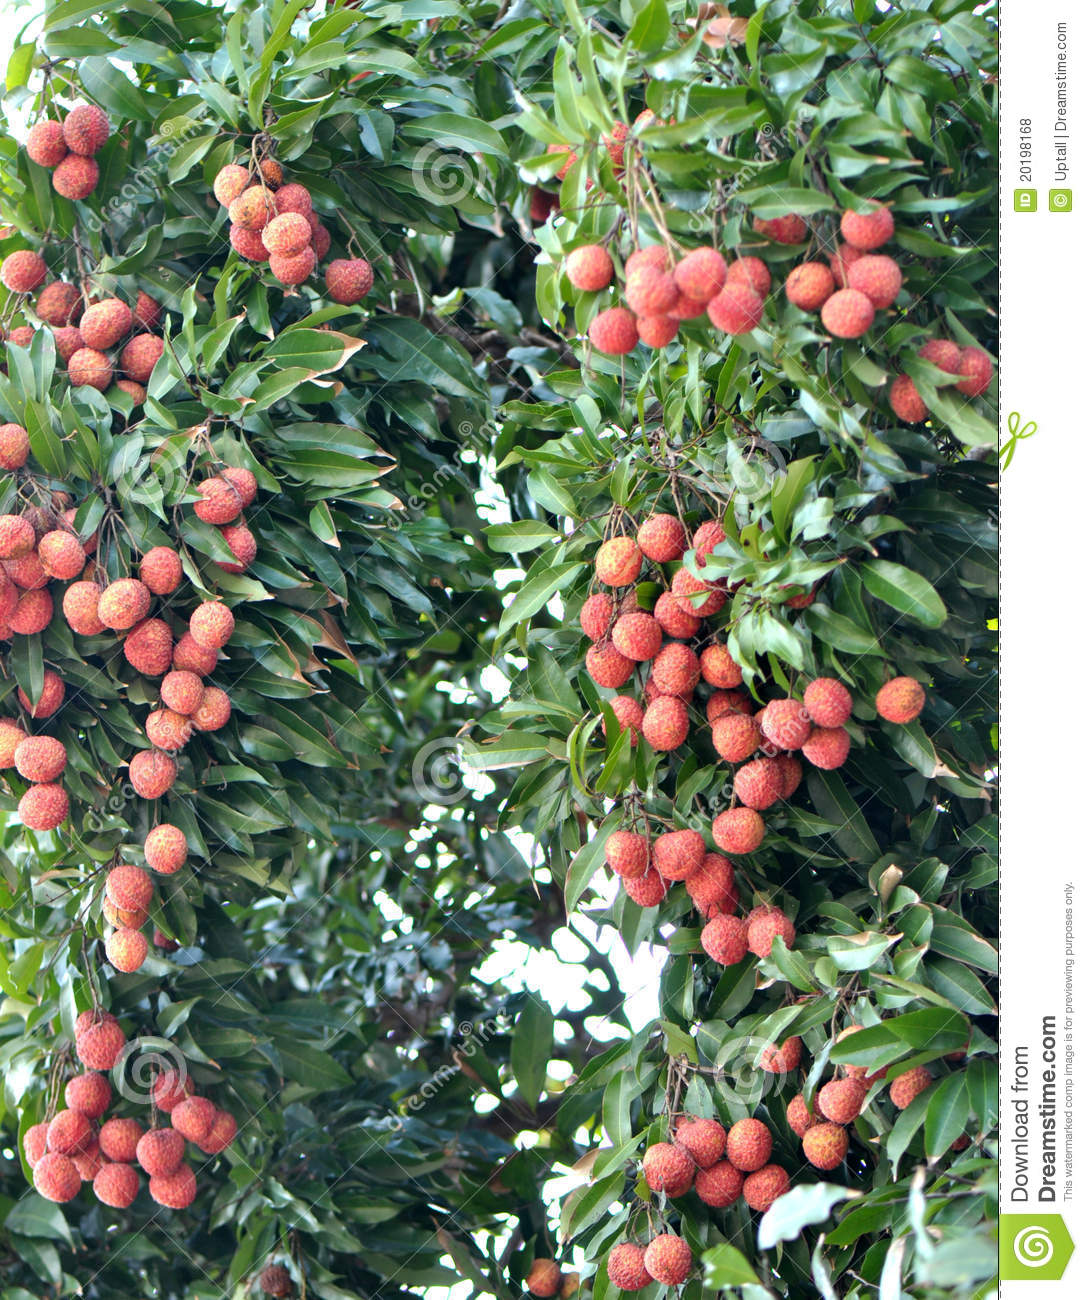 lychee fruit tree, Natural flower